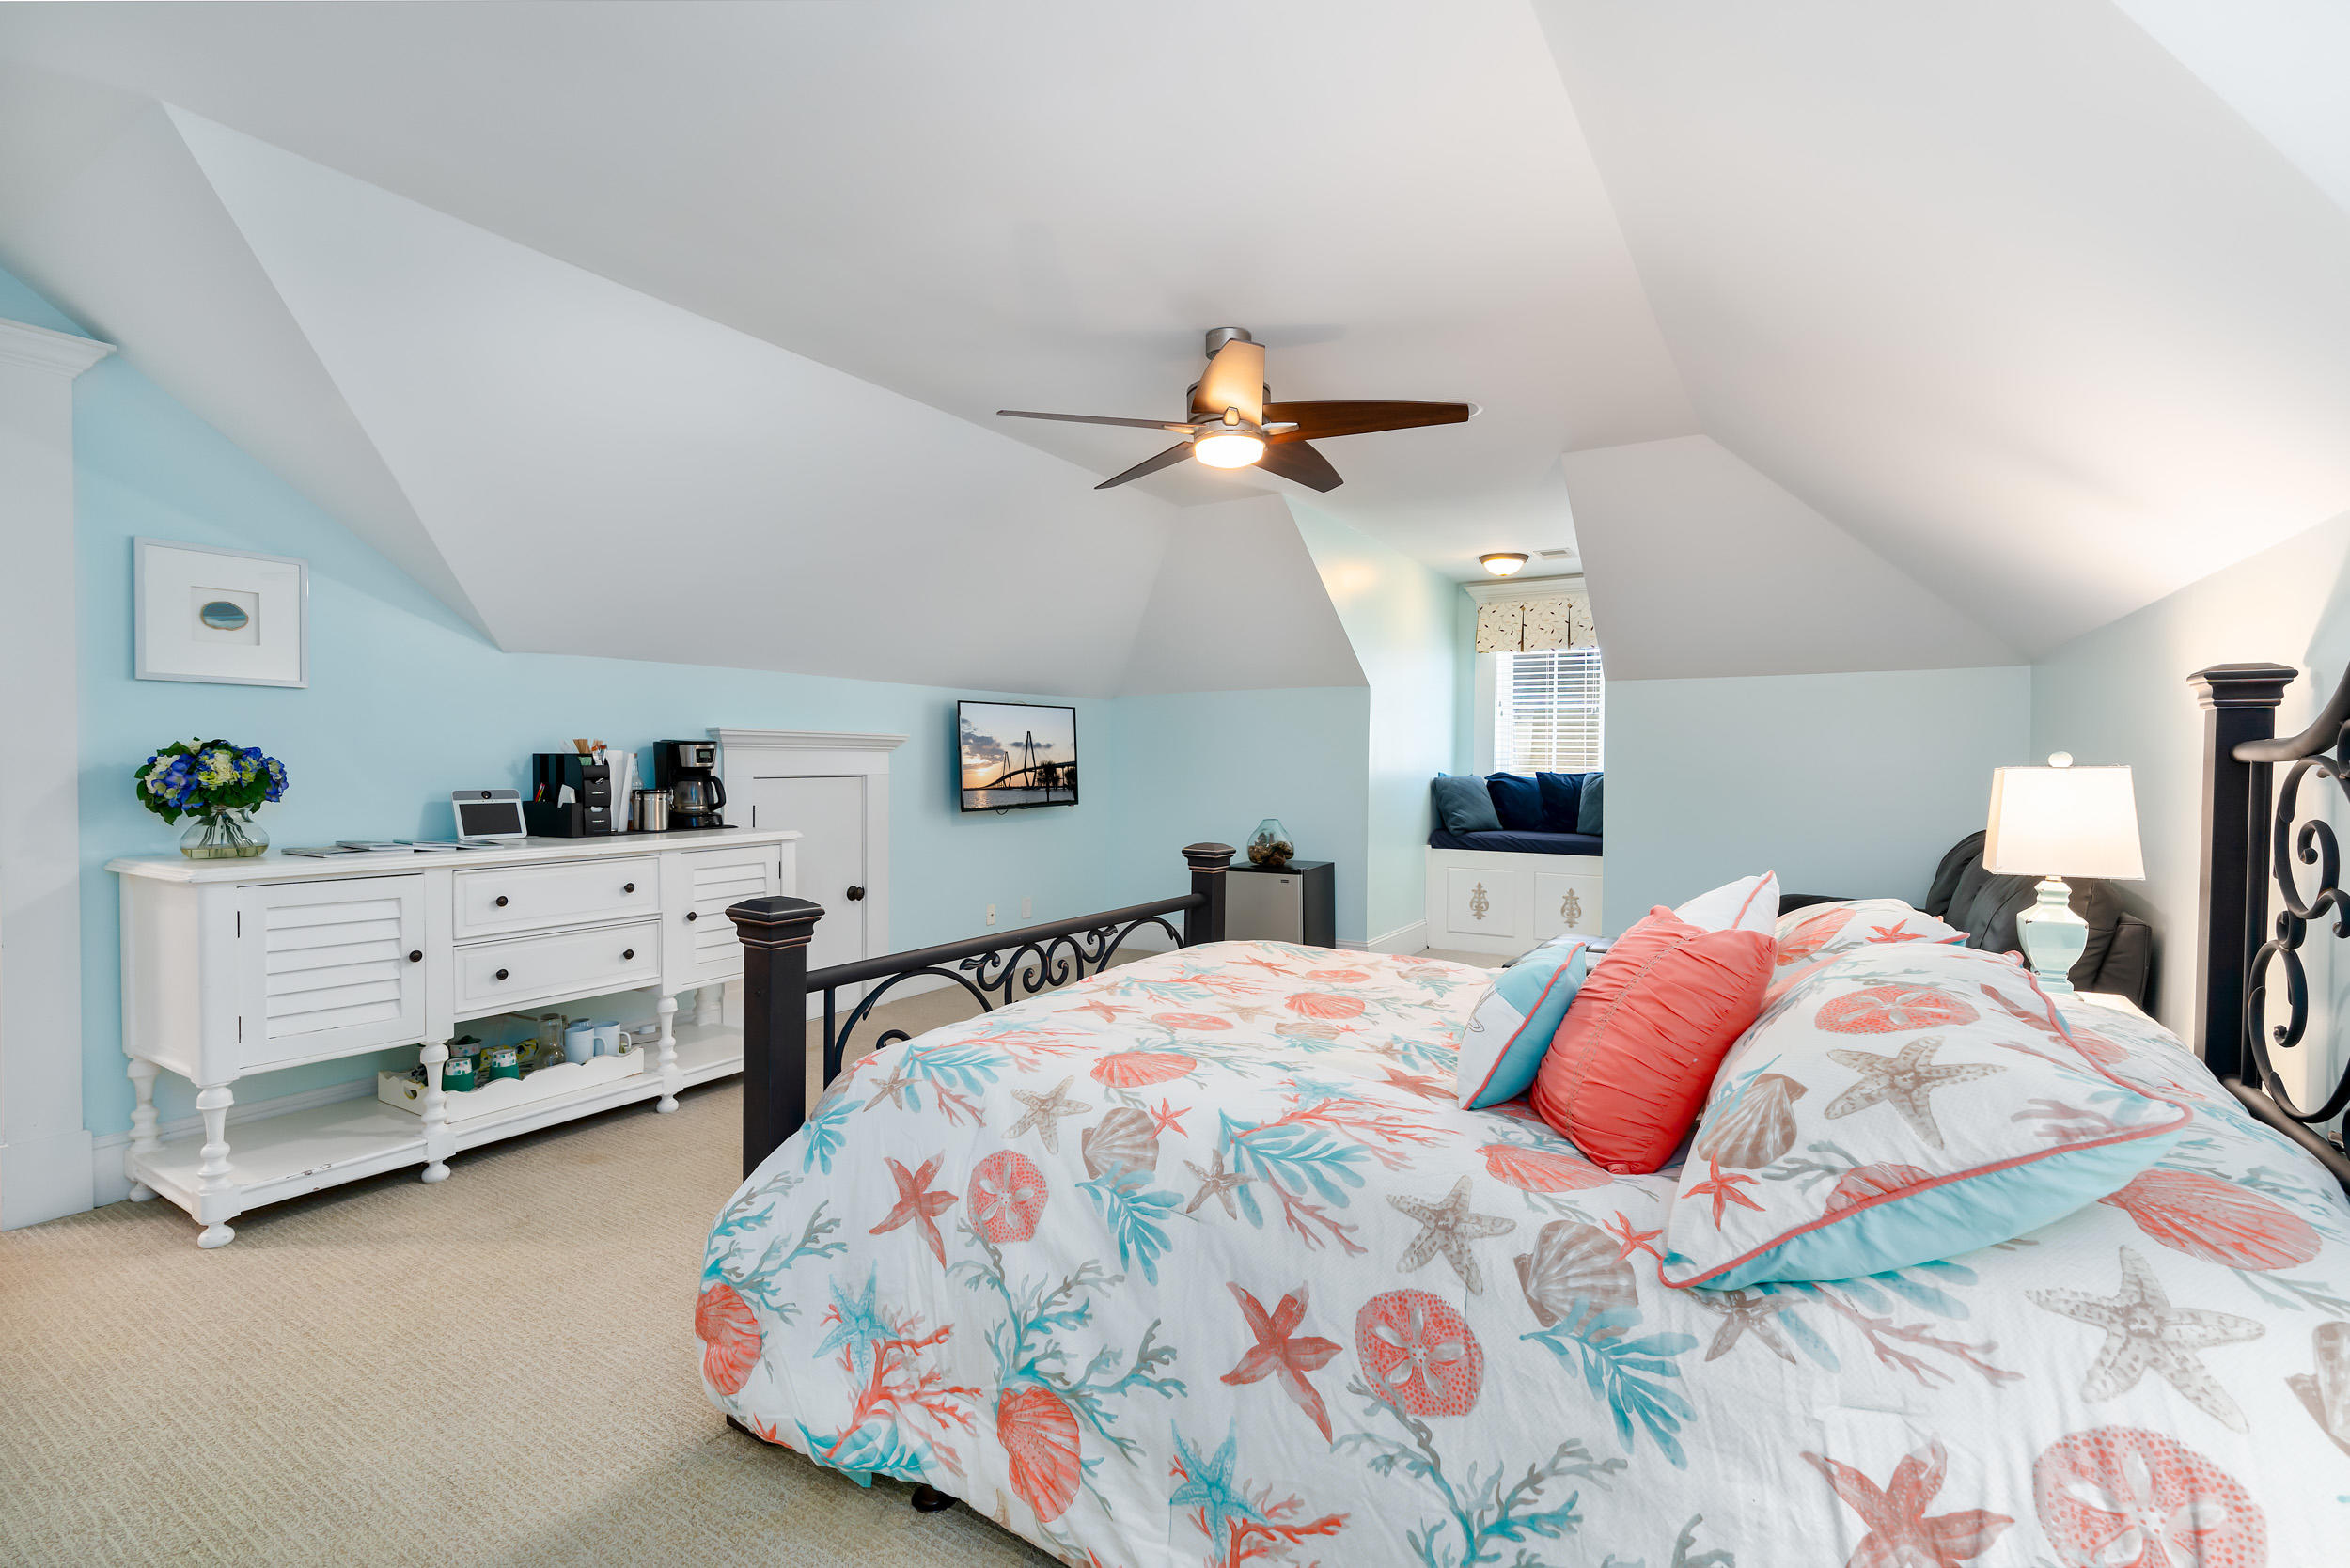 Rivertowne On The Wando Homes For Sale - 2268 Hartfords Bluff, Mount Pleasant, SC - 18